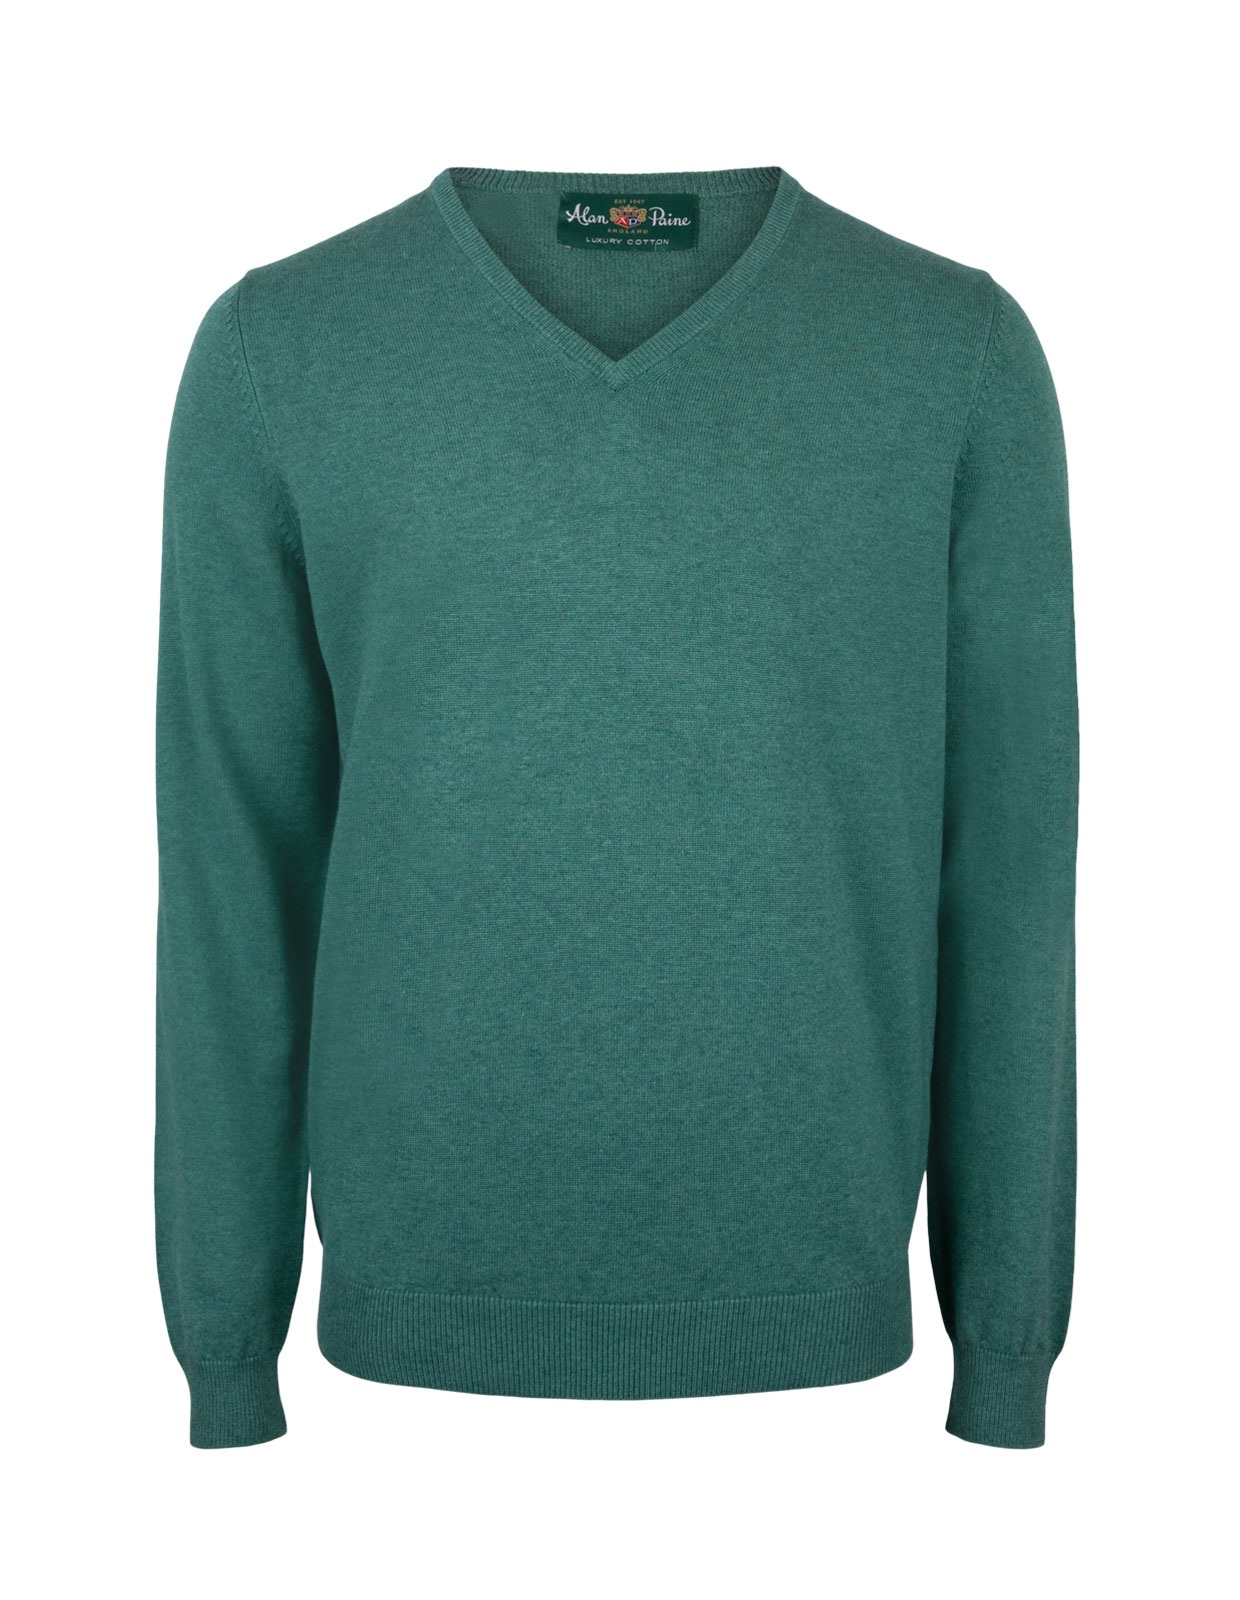 Rothwell Vee Neck Cotton Cashmere Moorland